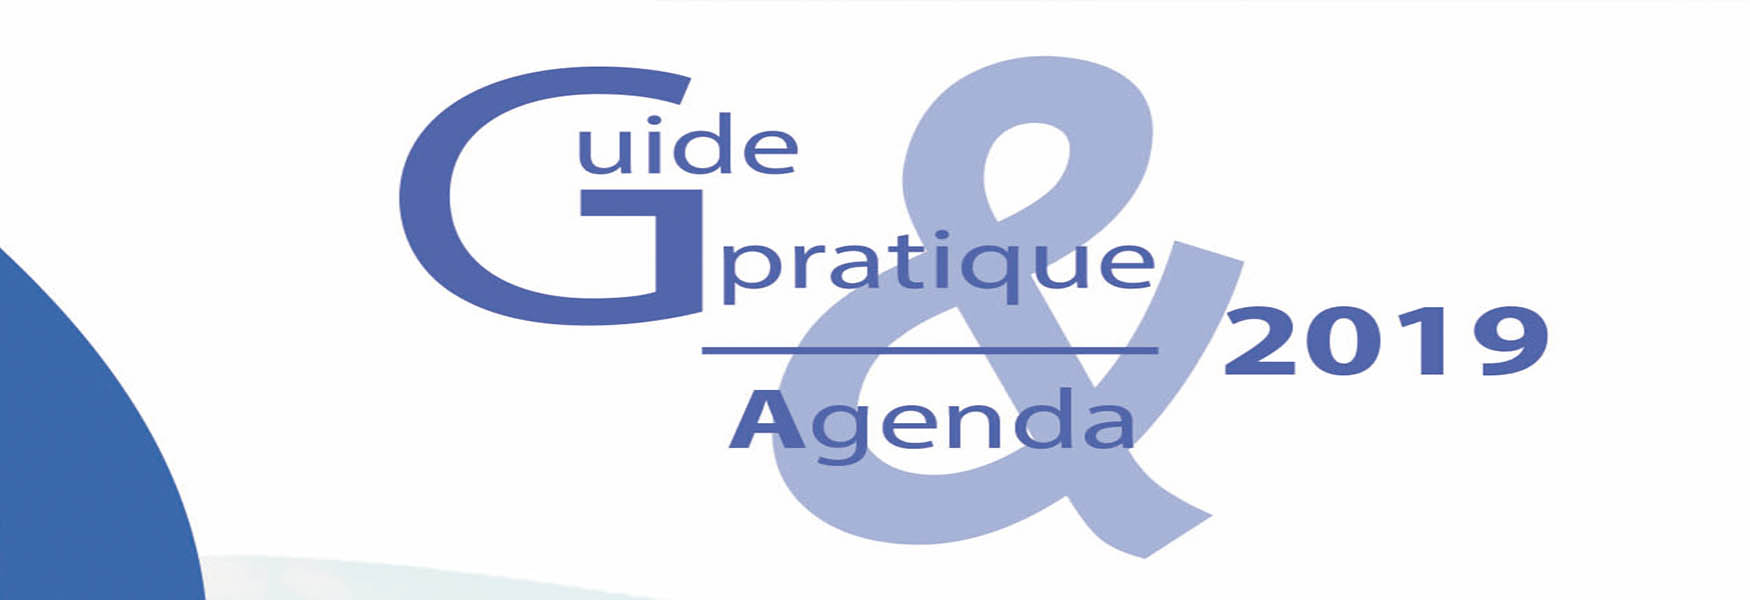 Guide pratique 2019